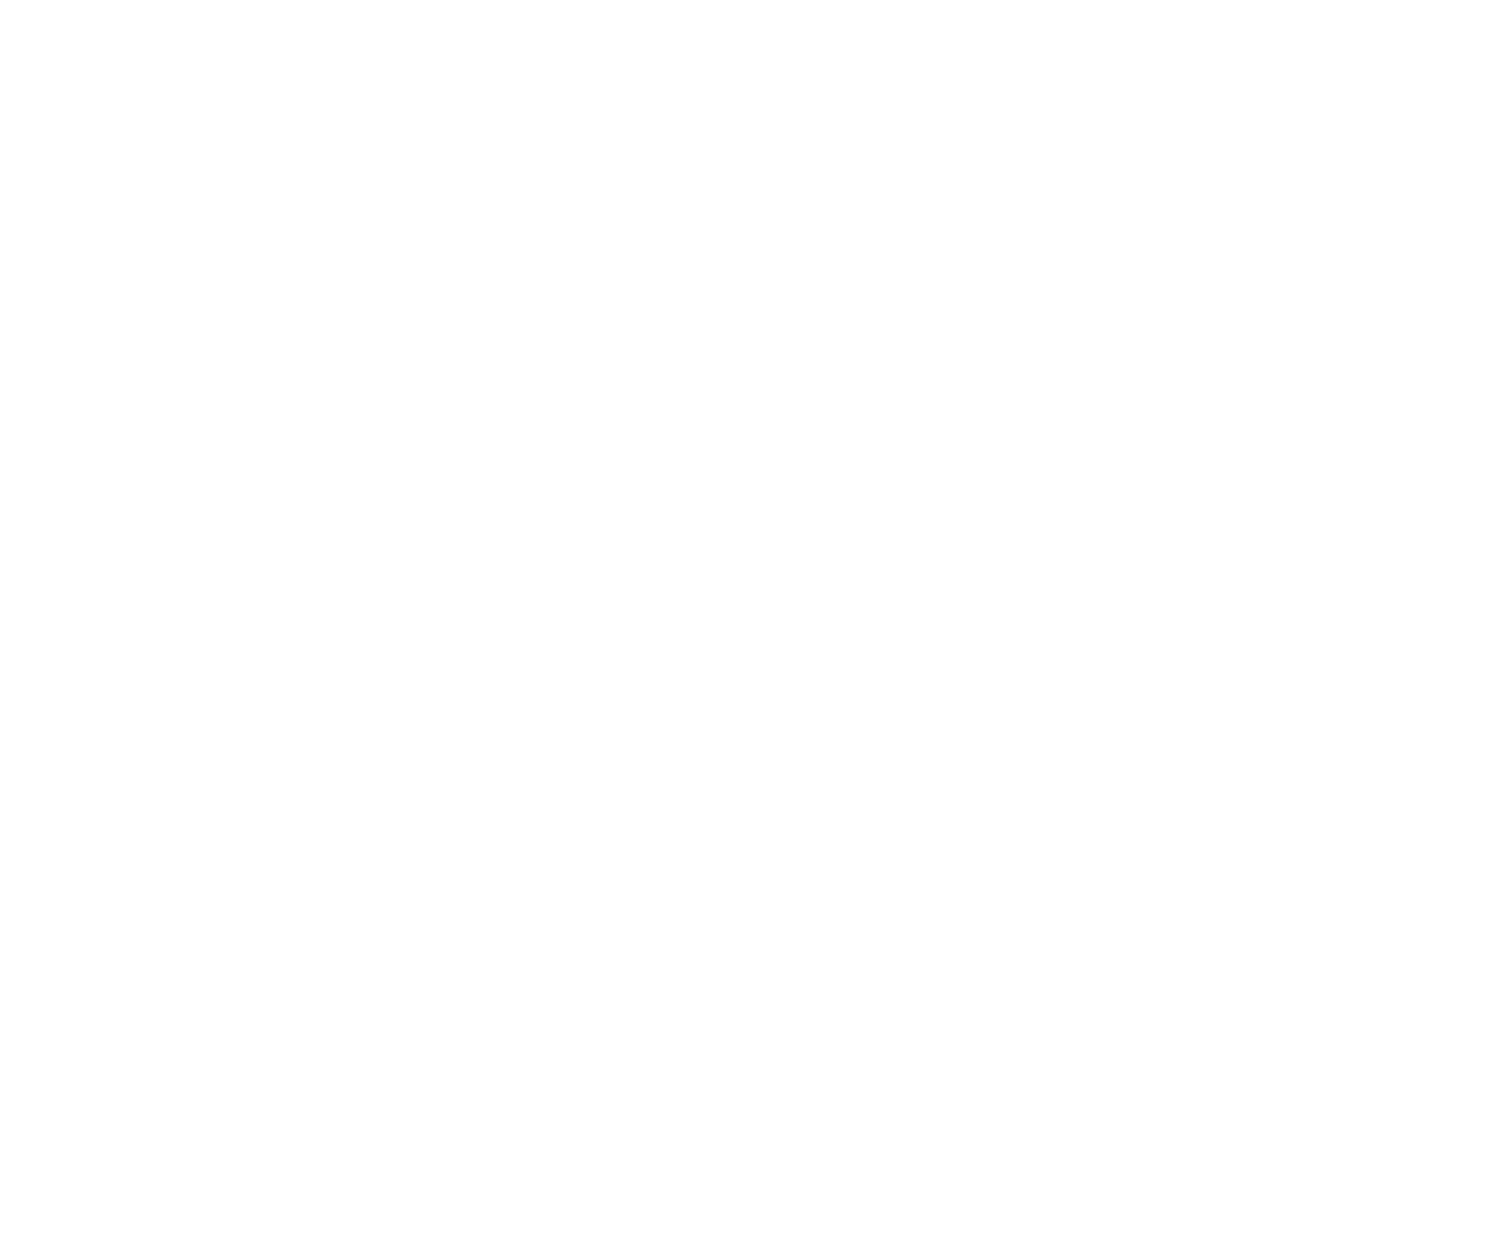 CloudKitchens